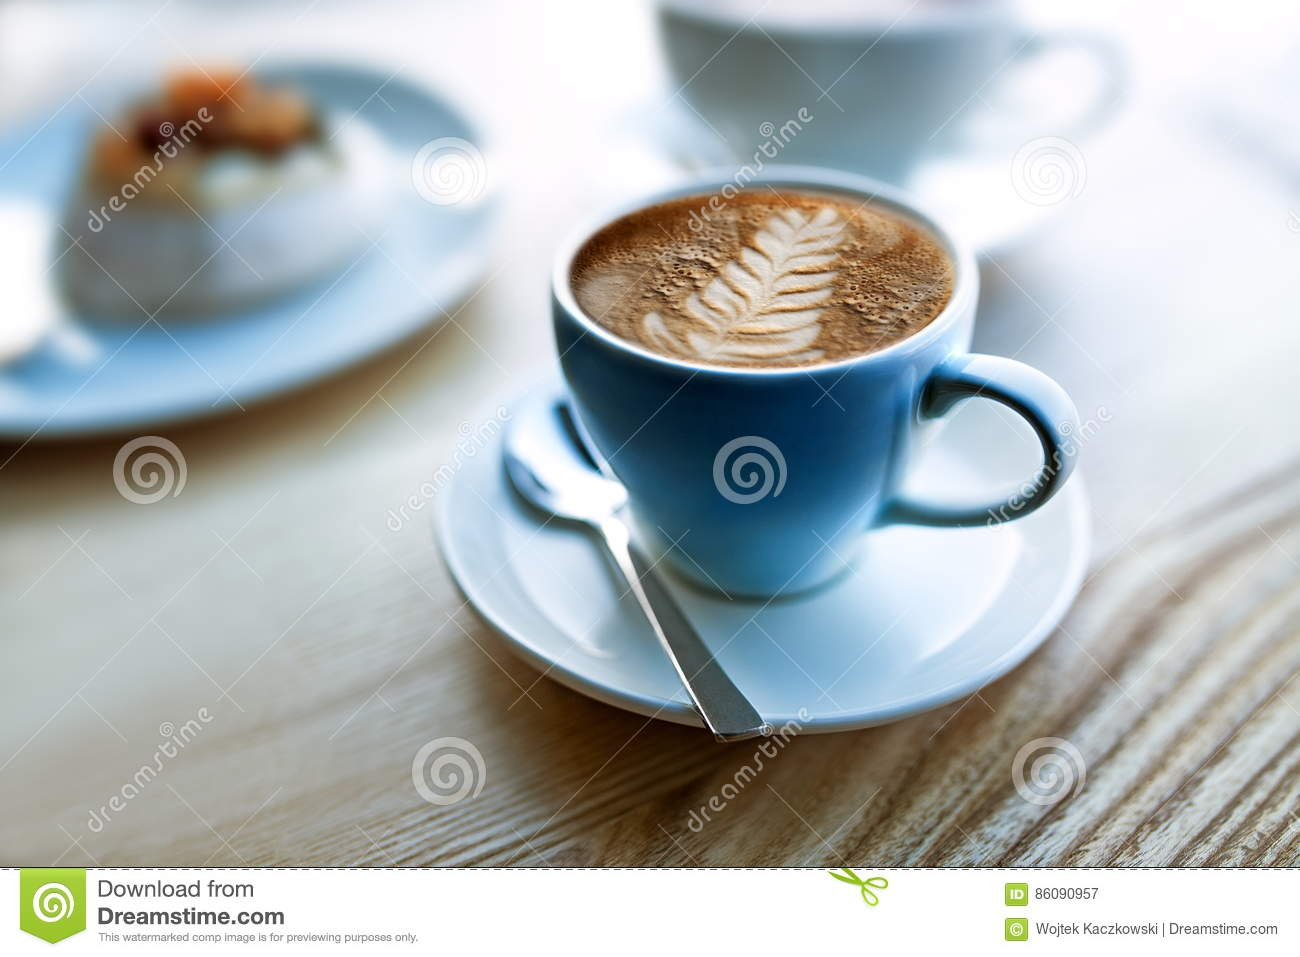 Take Break Coffeebreak : I feel like coffee let`s take a coffee break stock image image